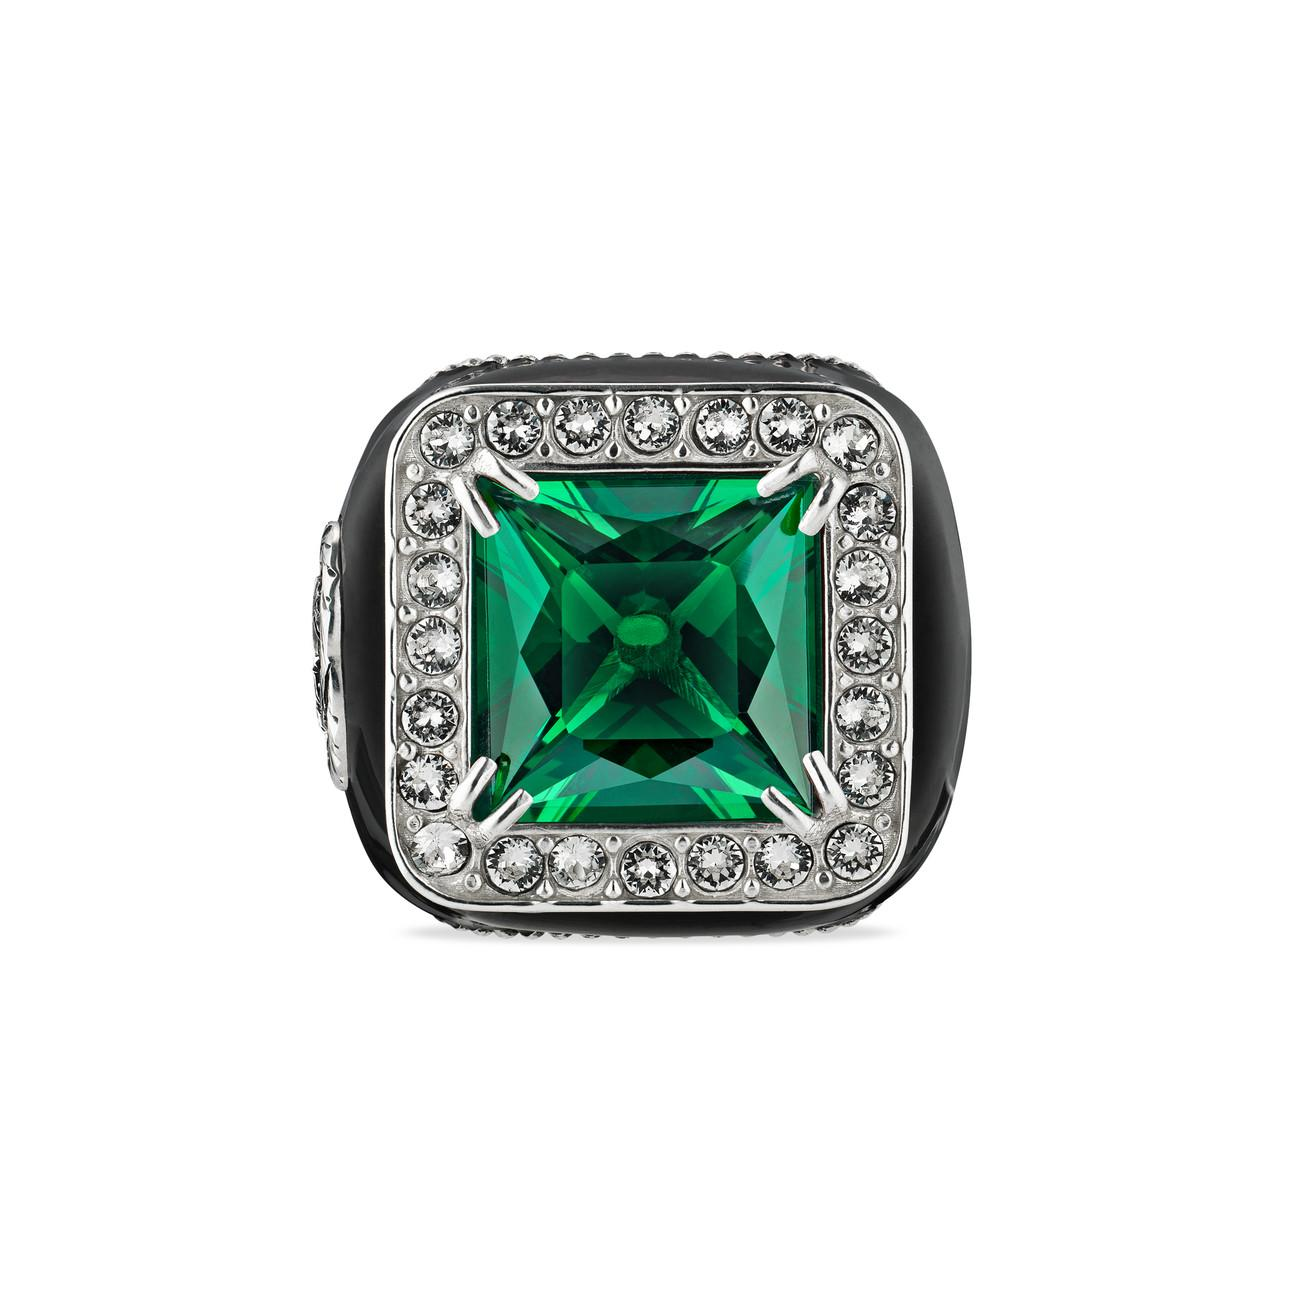 055e7fcd6 Lyst - Gucci Ring With Stone And Crystals in Green